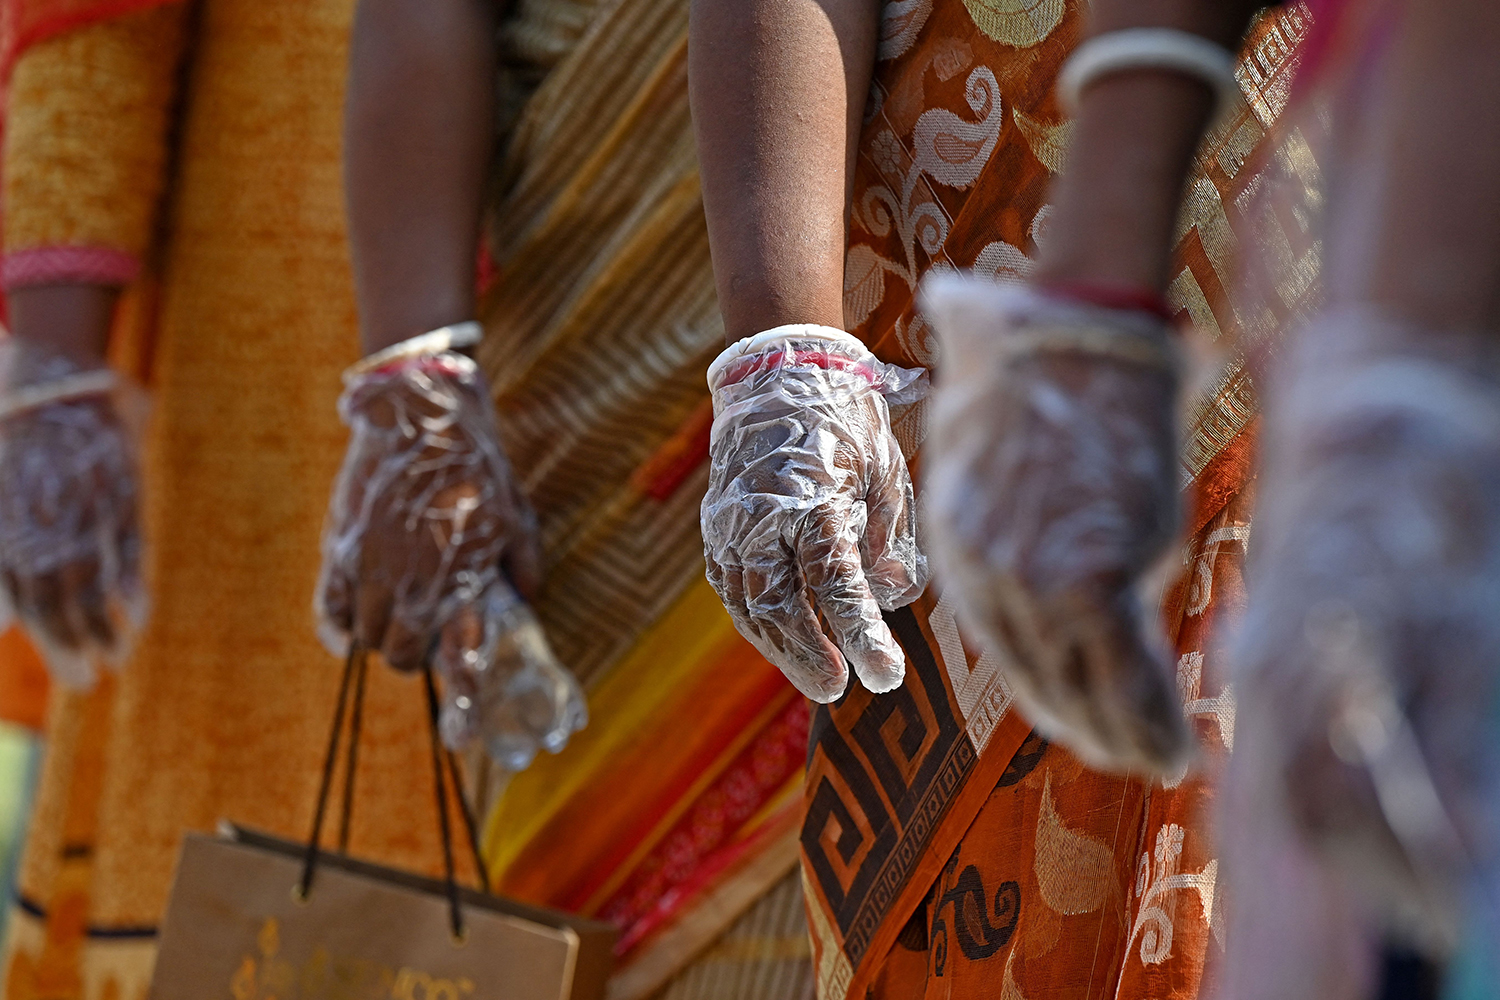 Following COVID protocols, voters wear gloves as they stand in line at a polling station to cast ballots during elections in Kolkata, India, on April 17. DIBYANGSHU SARKAR/AFP via Getty Images